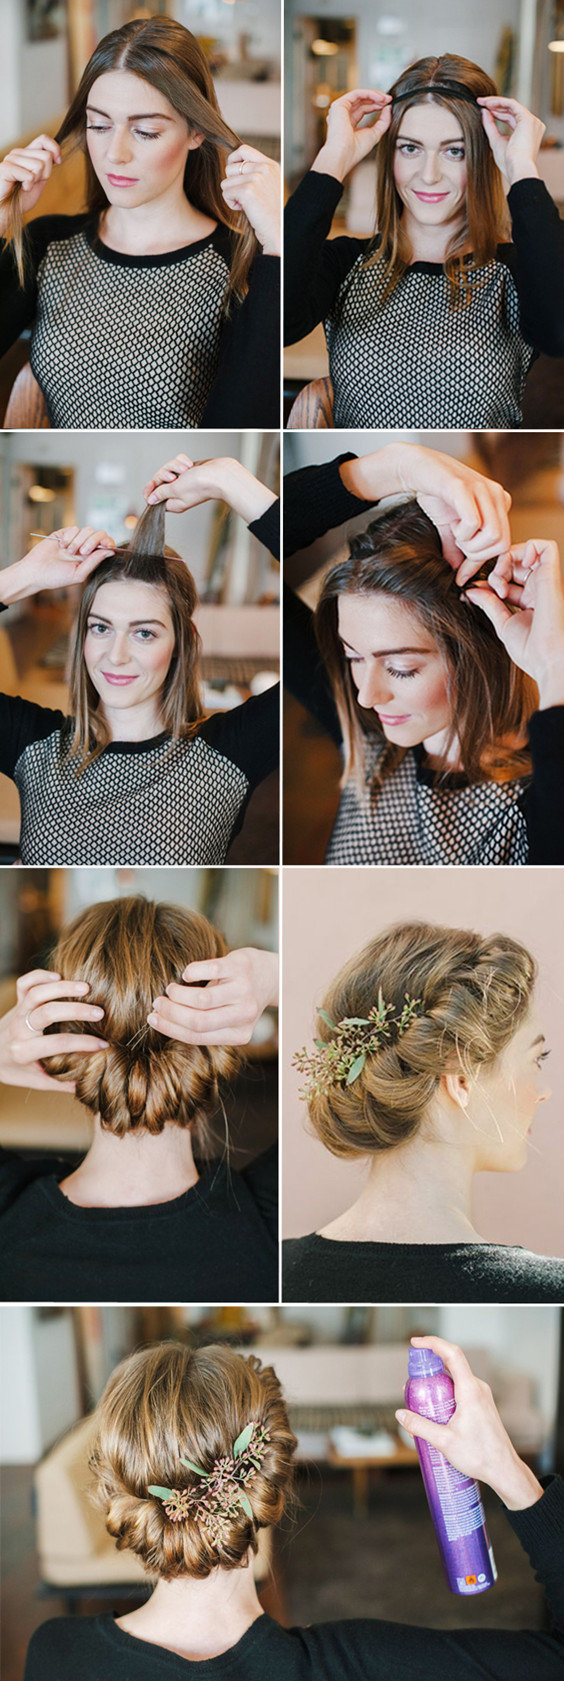 diy twisted braid crown wedding hairstyles